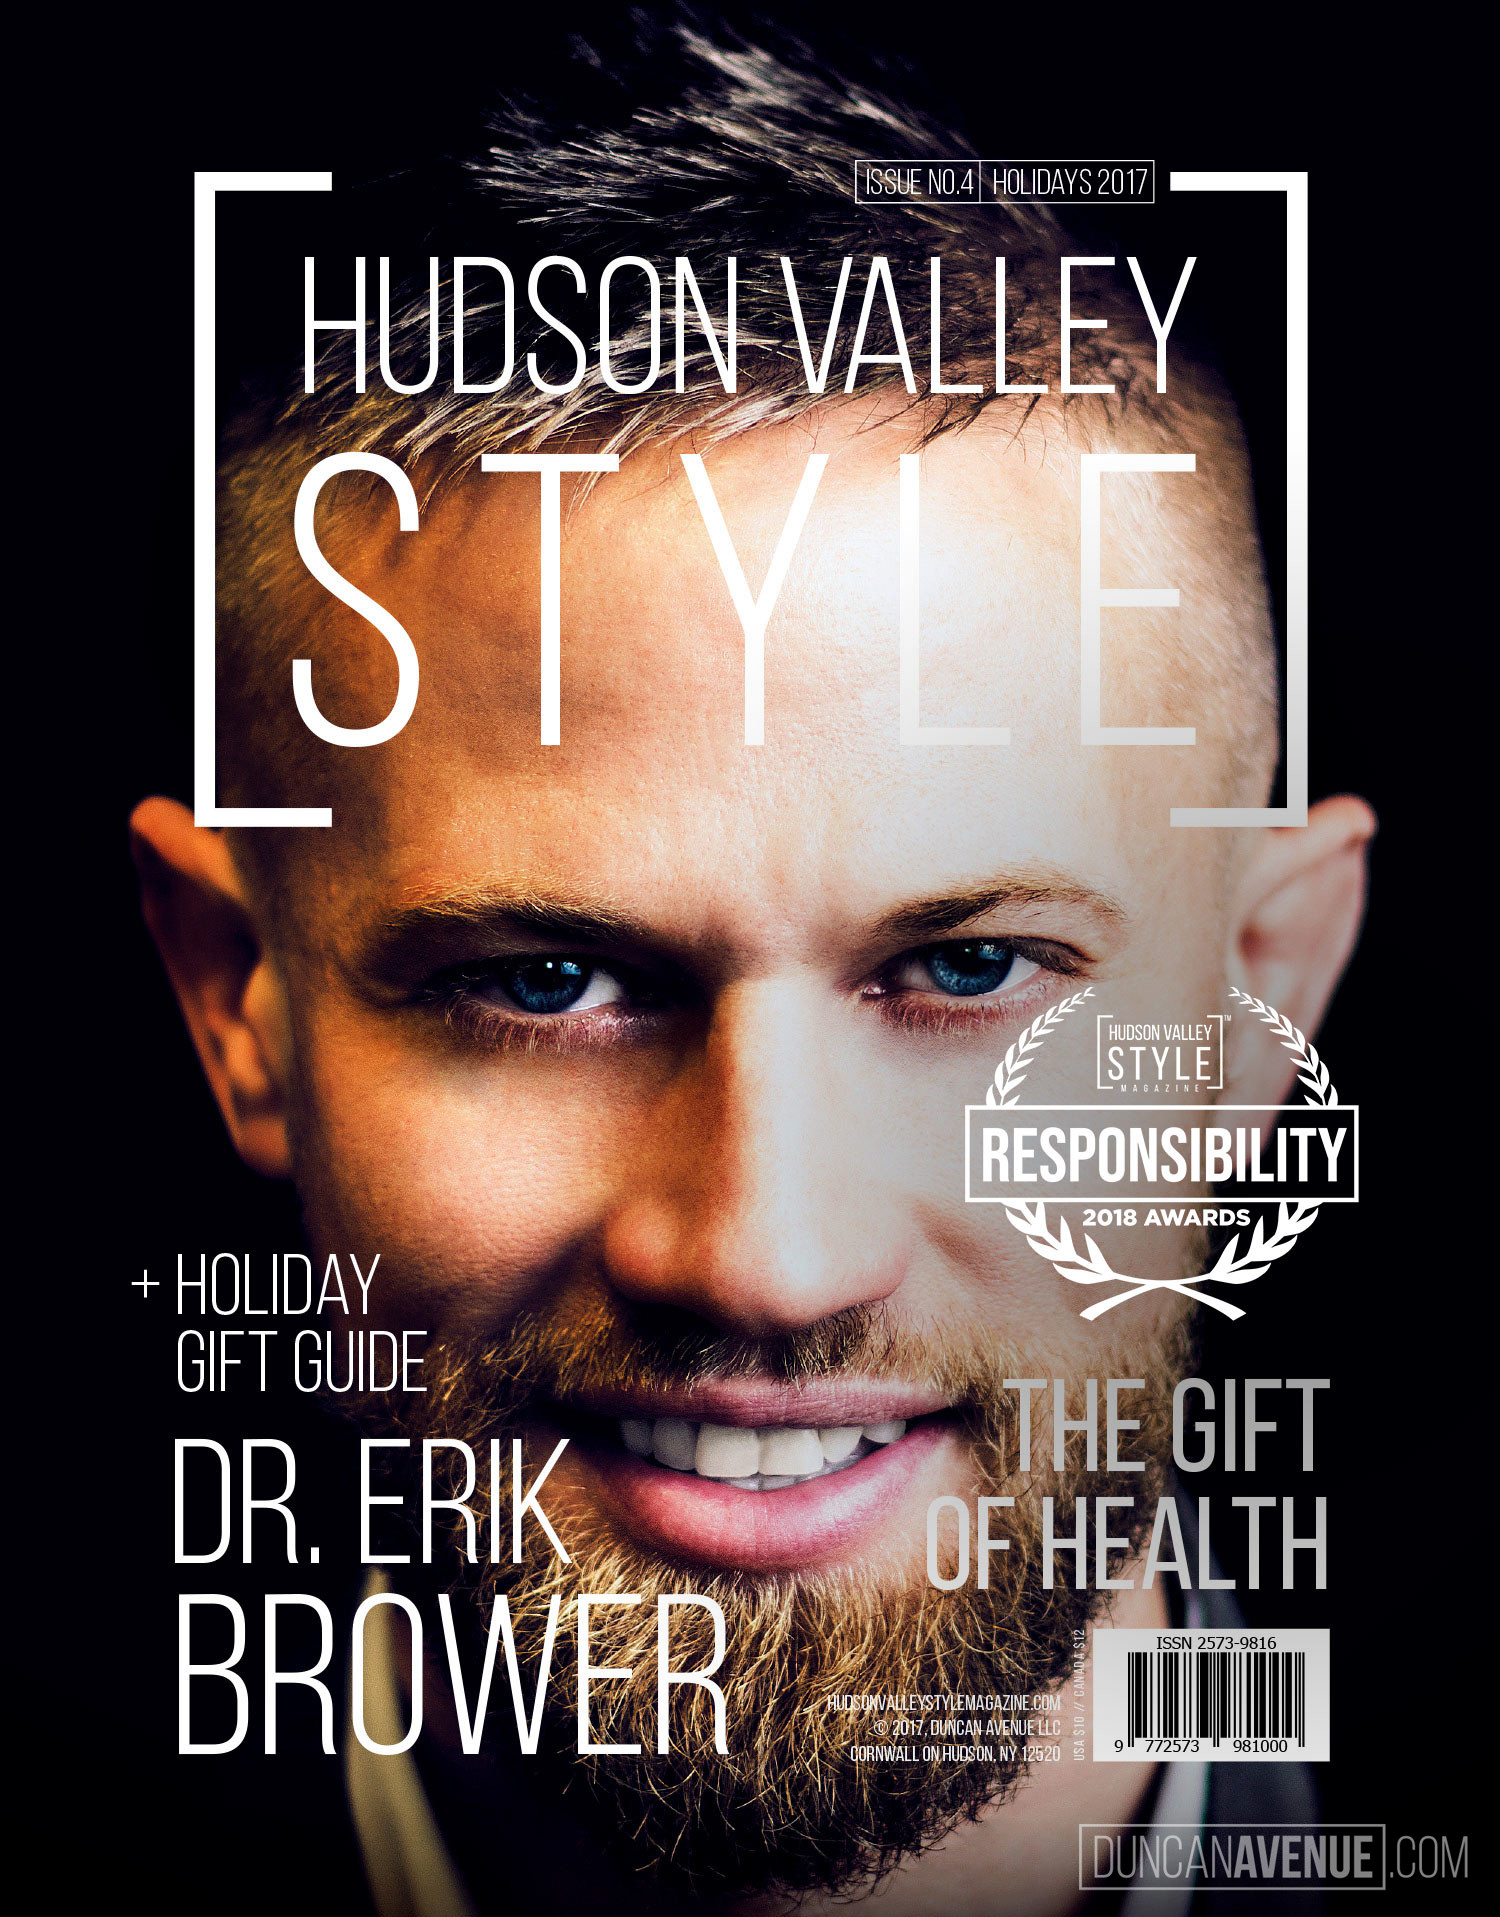 Hudson Valley Style Magazine 2018 Awards: Recognizing Outstanding Style, Design, Creativity, Innovation and Leadership Achievements while advancing Sustainability and Social Responsibility Principles in the Greater Hudson Valley Region and all around the World.